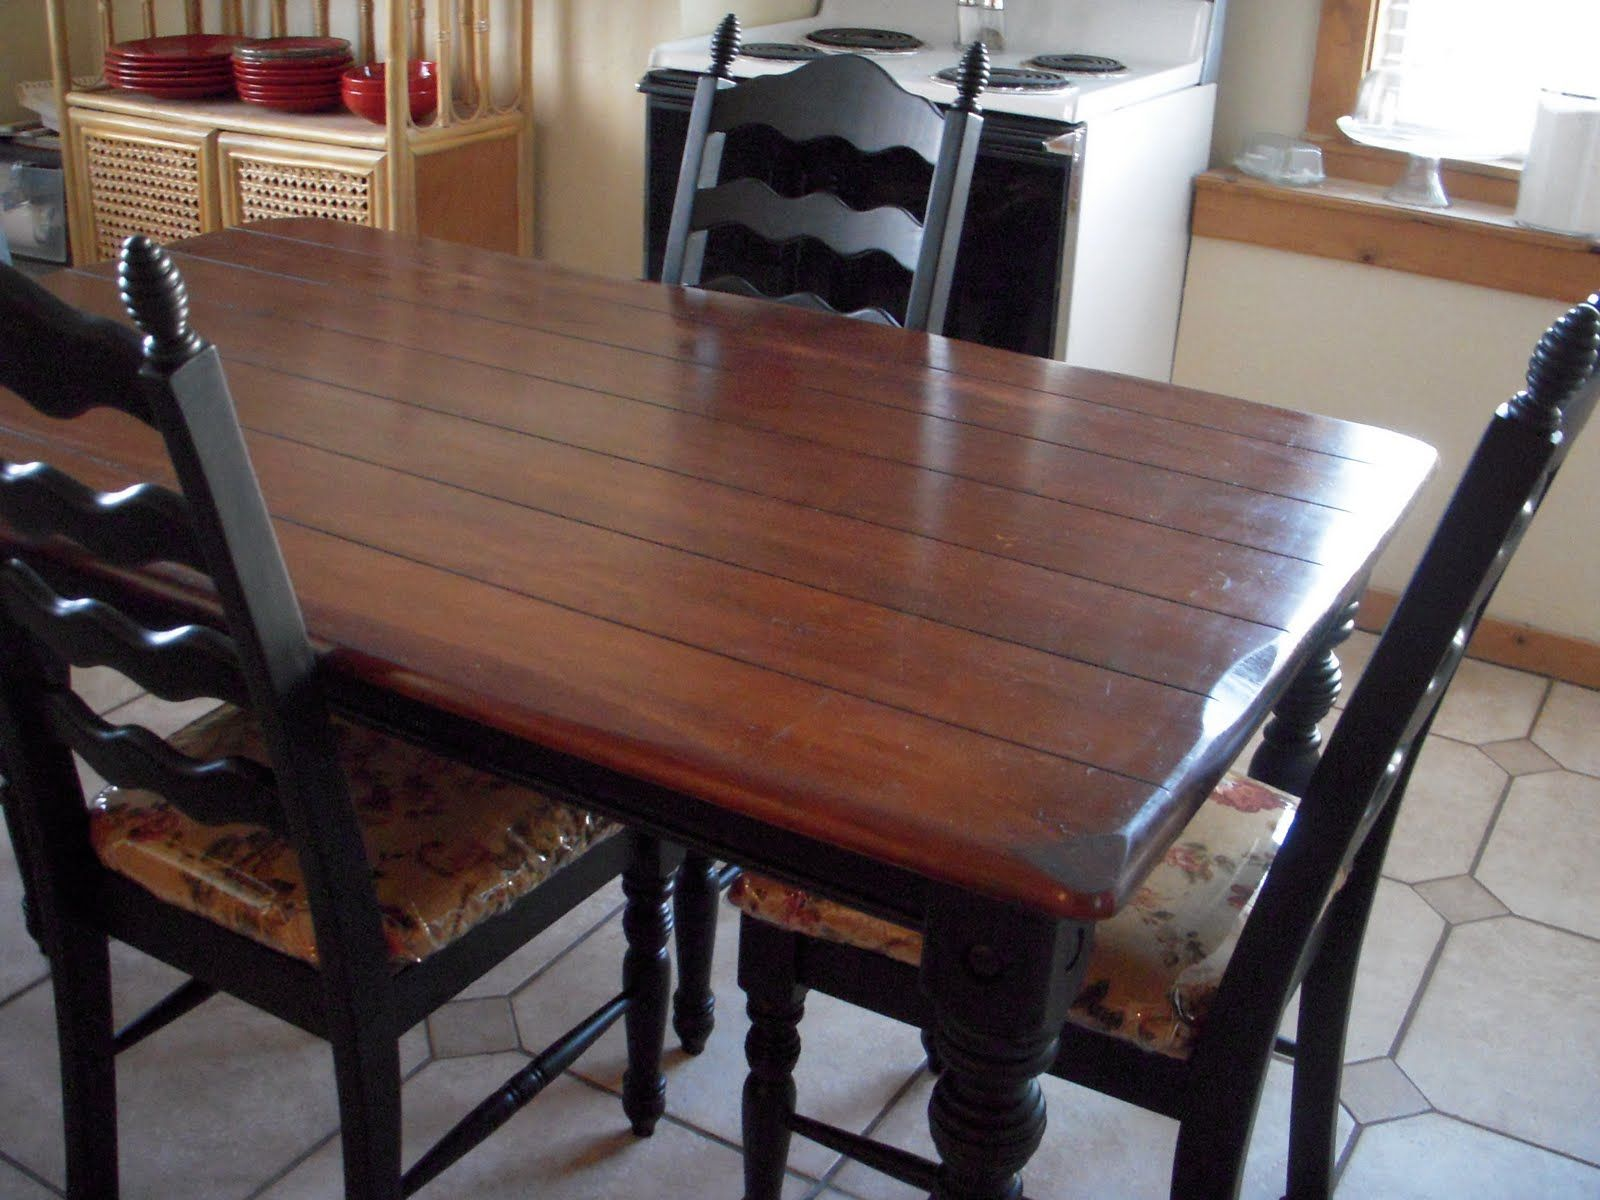 Diy dining table makeover - Images Of Painted Kitchen Table And Chairs 15 Tada So Shiny